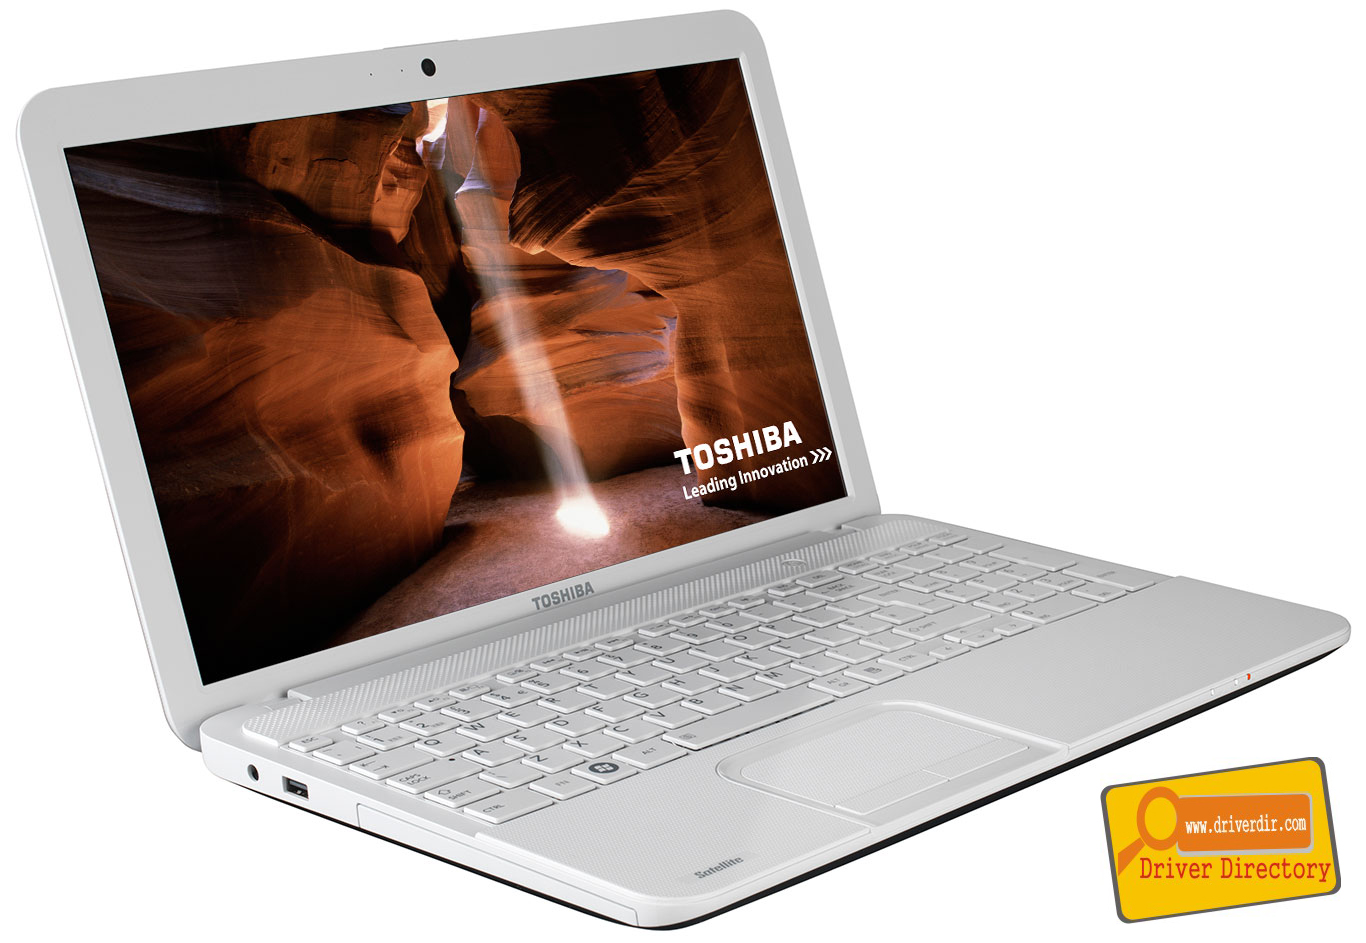 Toshiba Satellite C850 Drivers